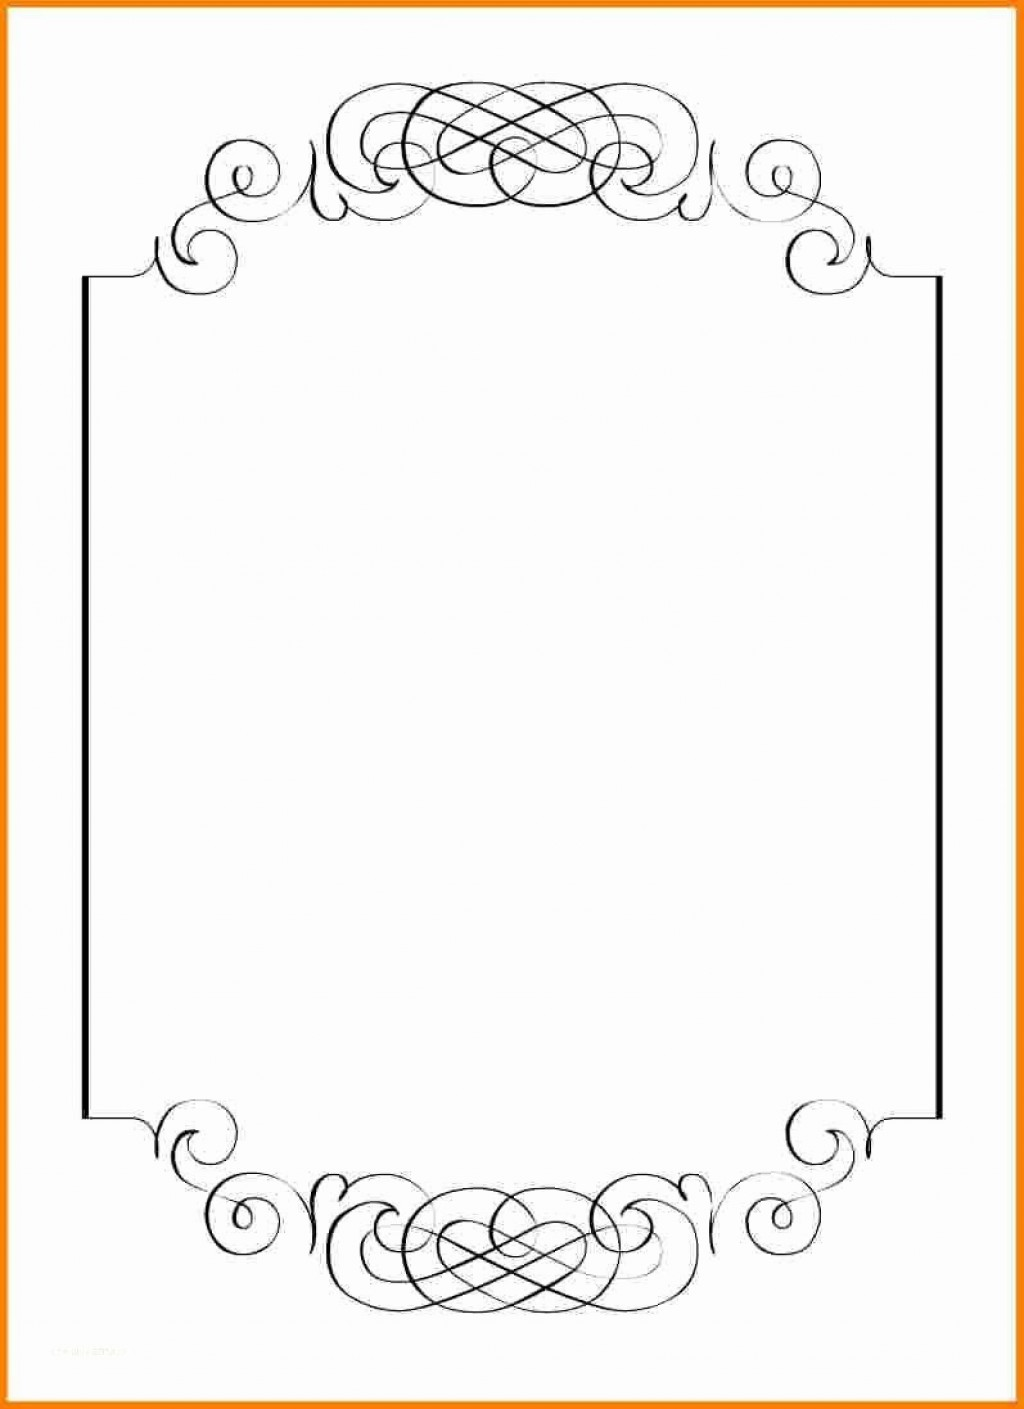 000 Rare Blank Birthday Invitation Template For Microsoft Word Photo Large